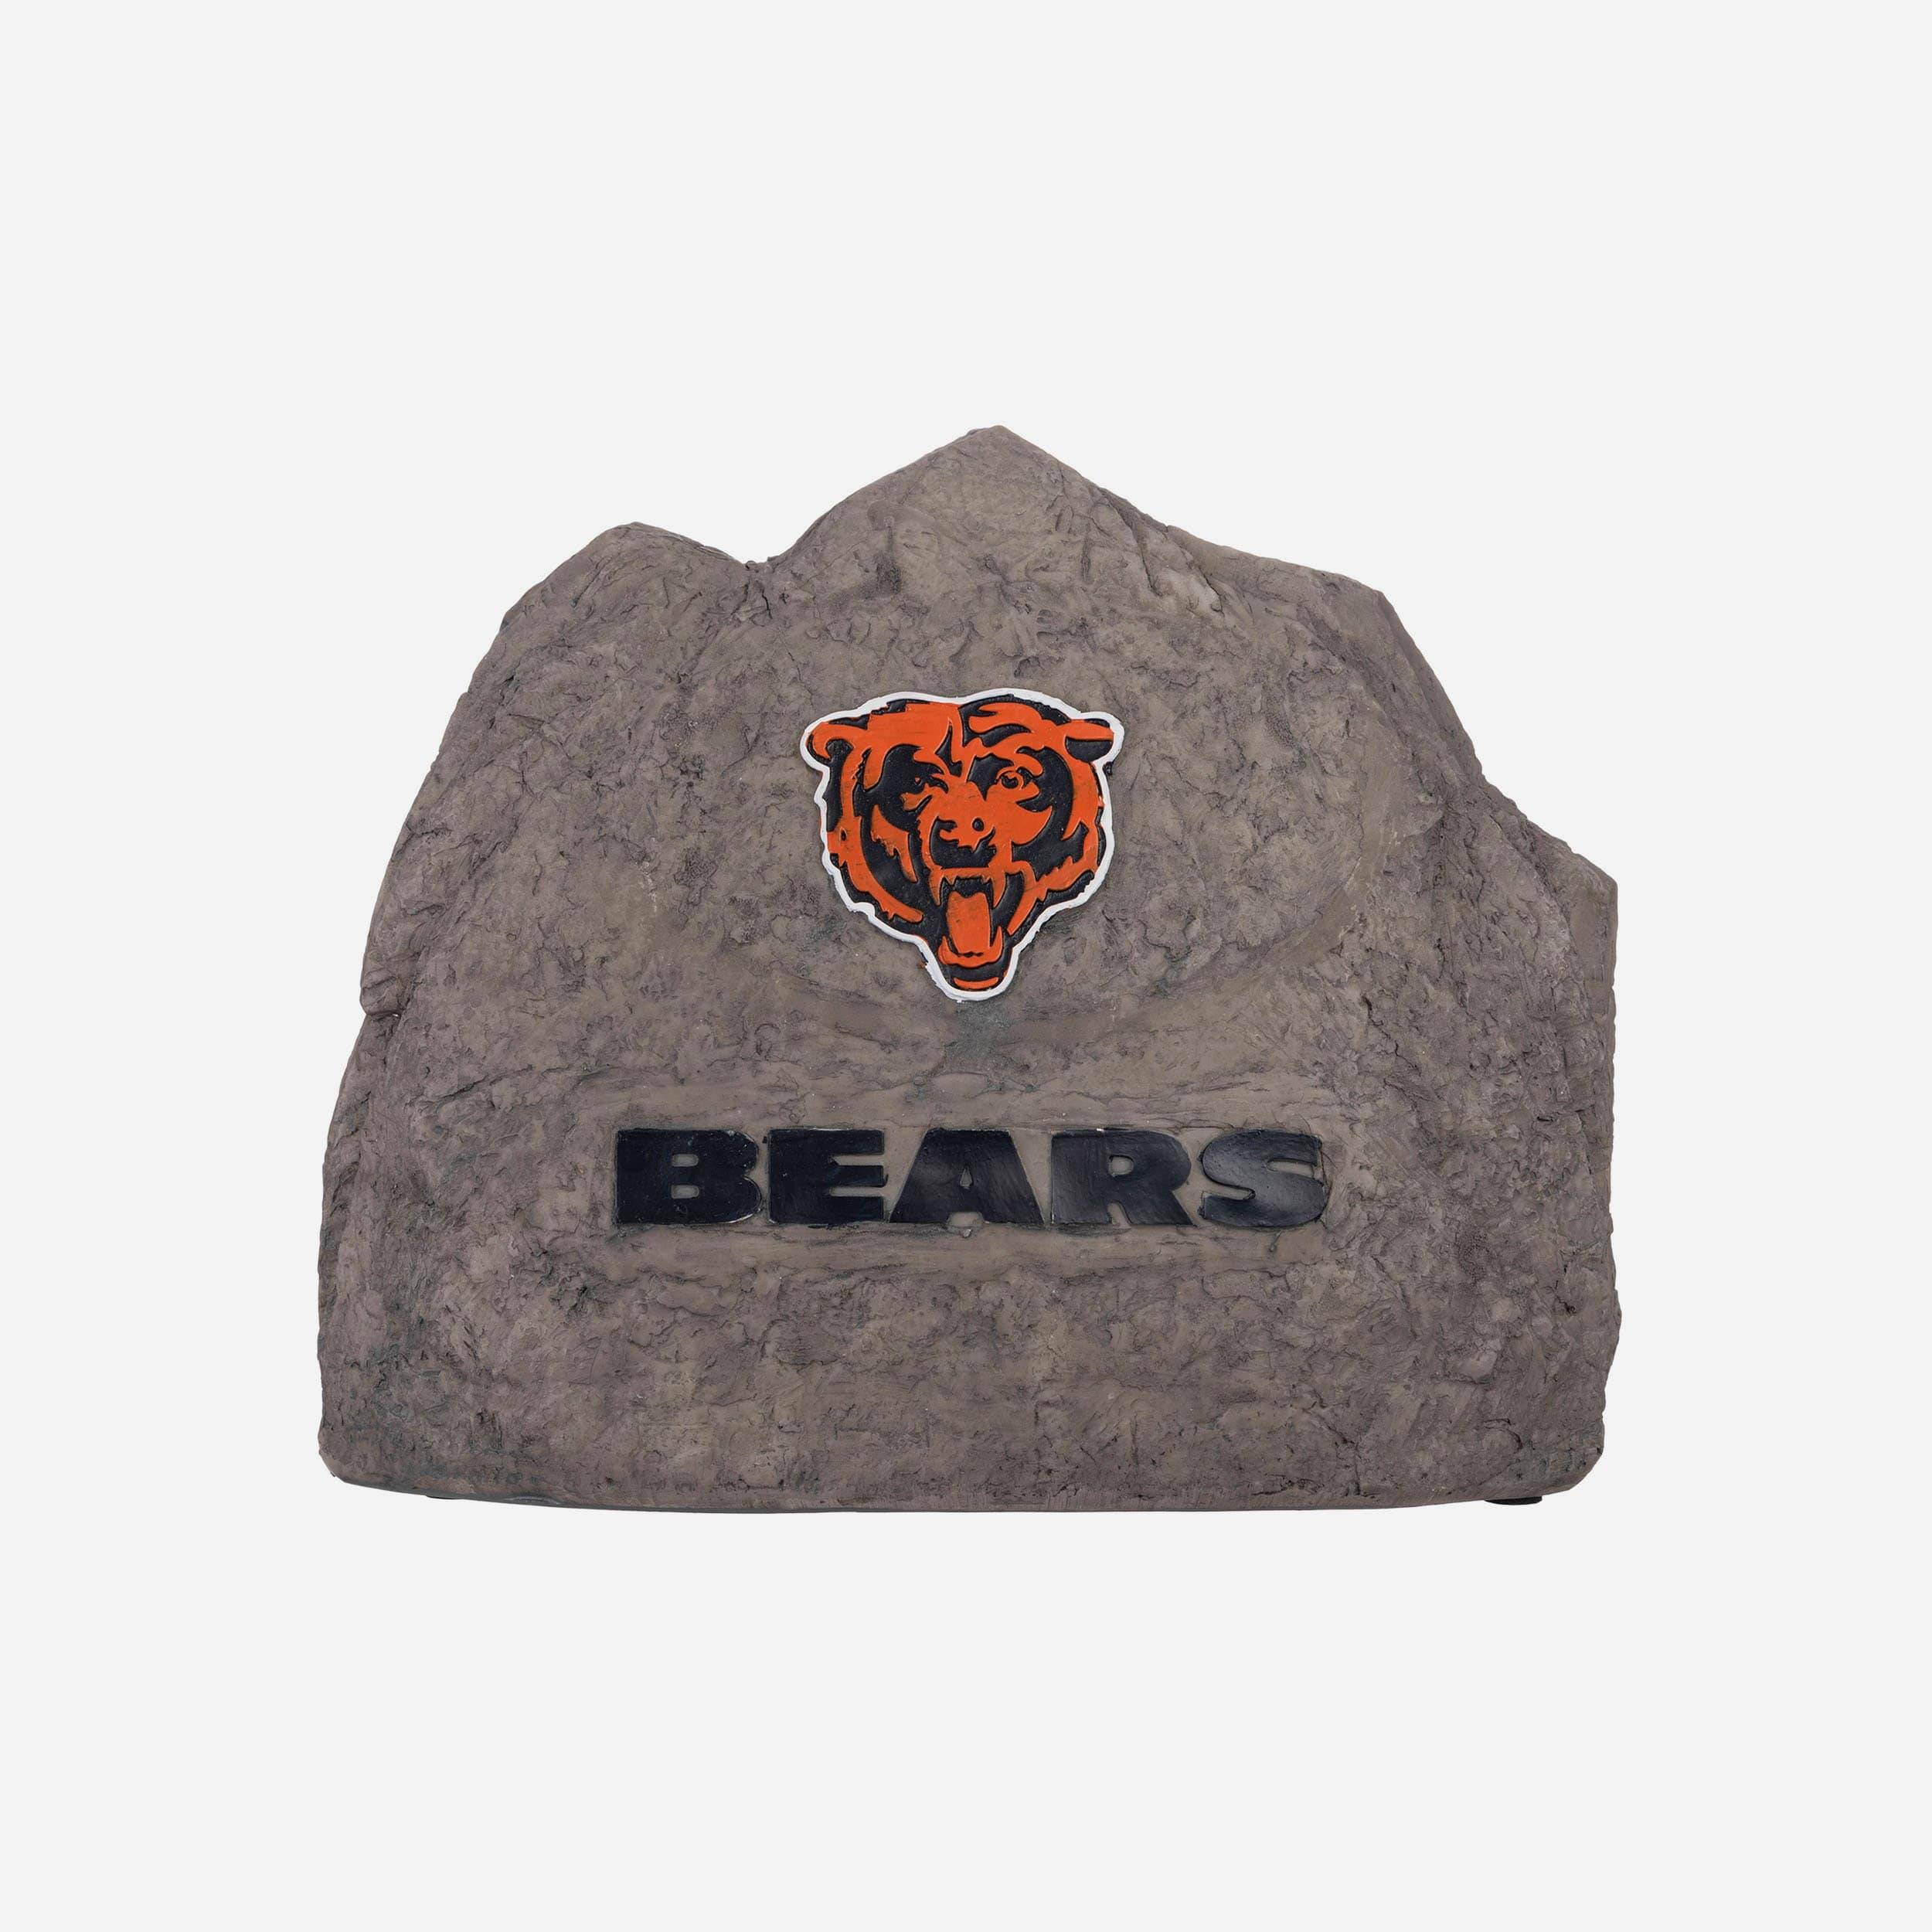 FOCO Chicago Bears Garden Stone